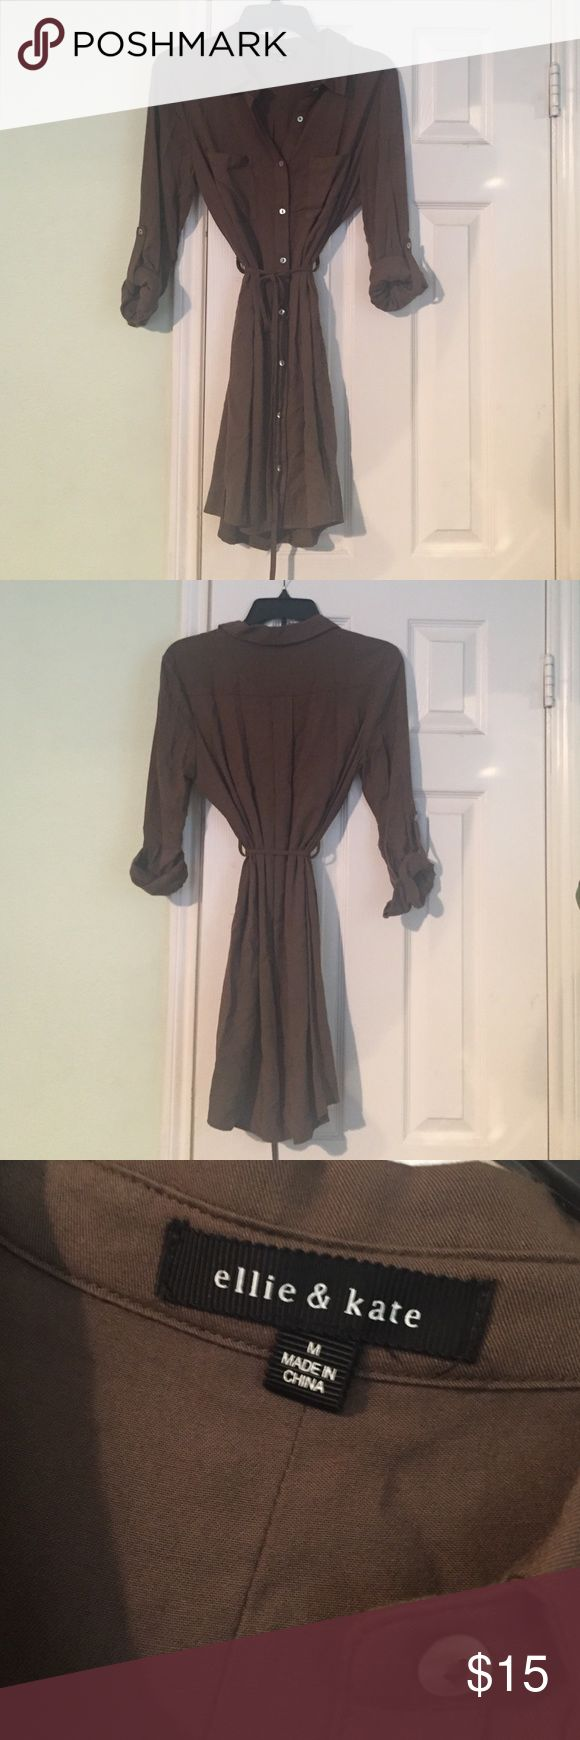 Olive green shirt dress with adjustable tie waist Gorgeous shirt dress in olive green! Only selling because it's too big on me! Has an adjustable tie waist detail and sleeves that can be rolled up and buttoned. Never been worn! Ellie and Kate Dresses Mini